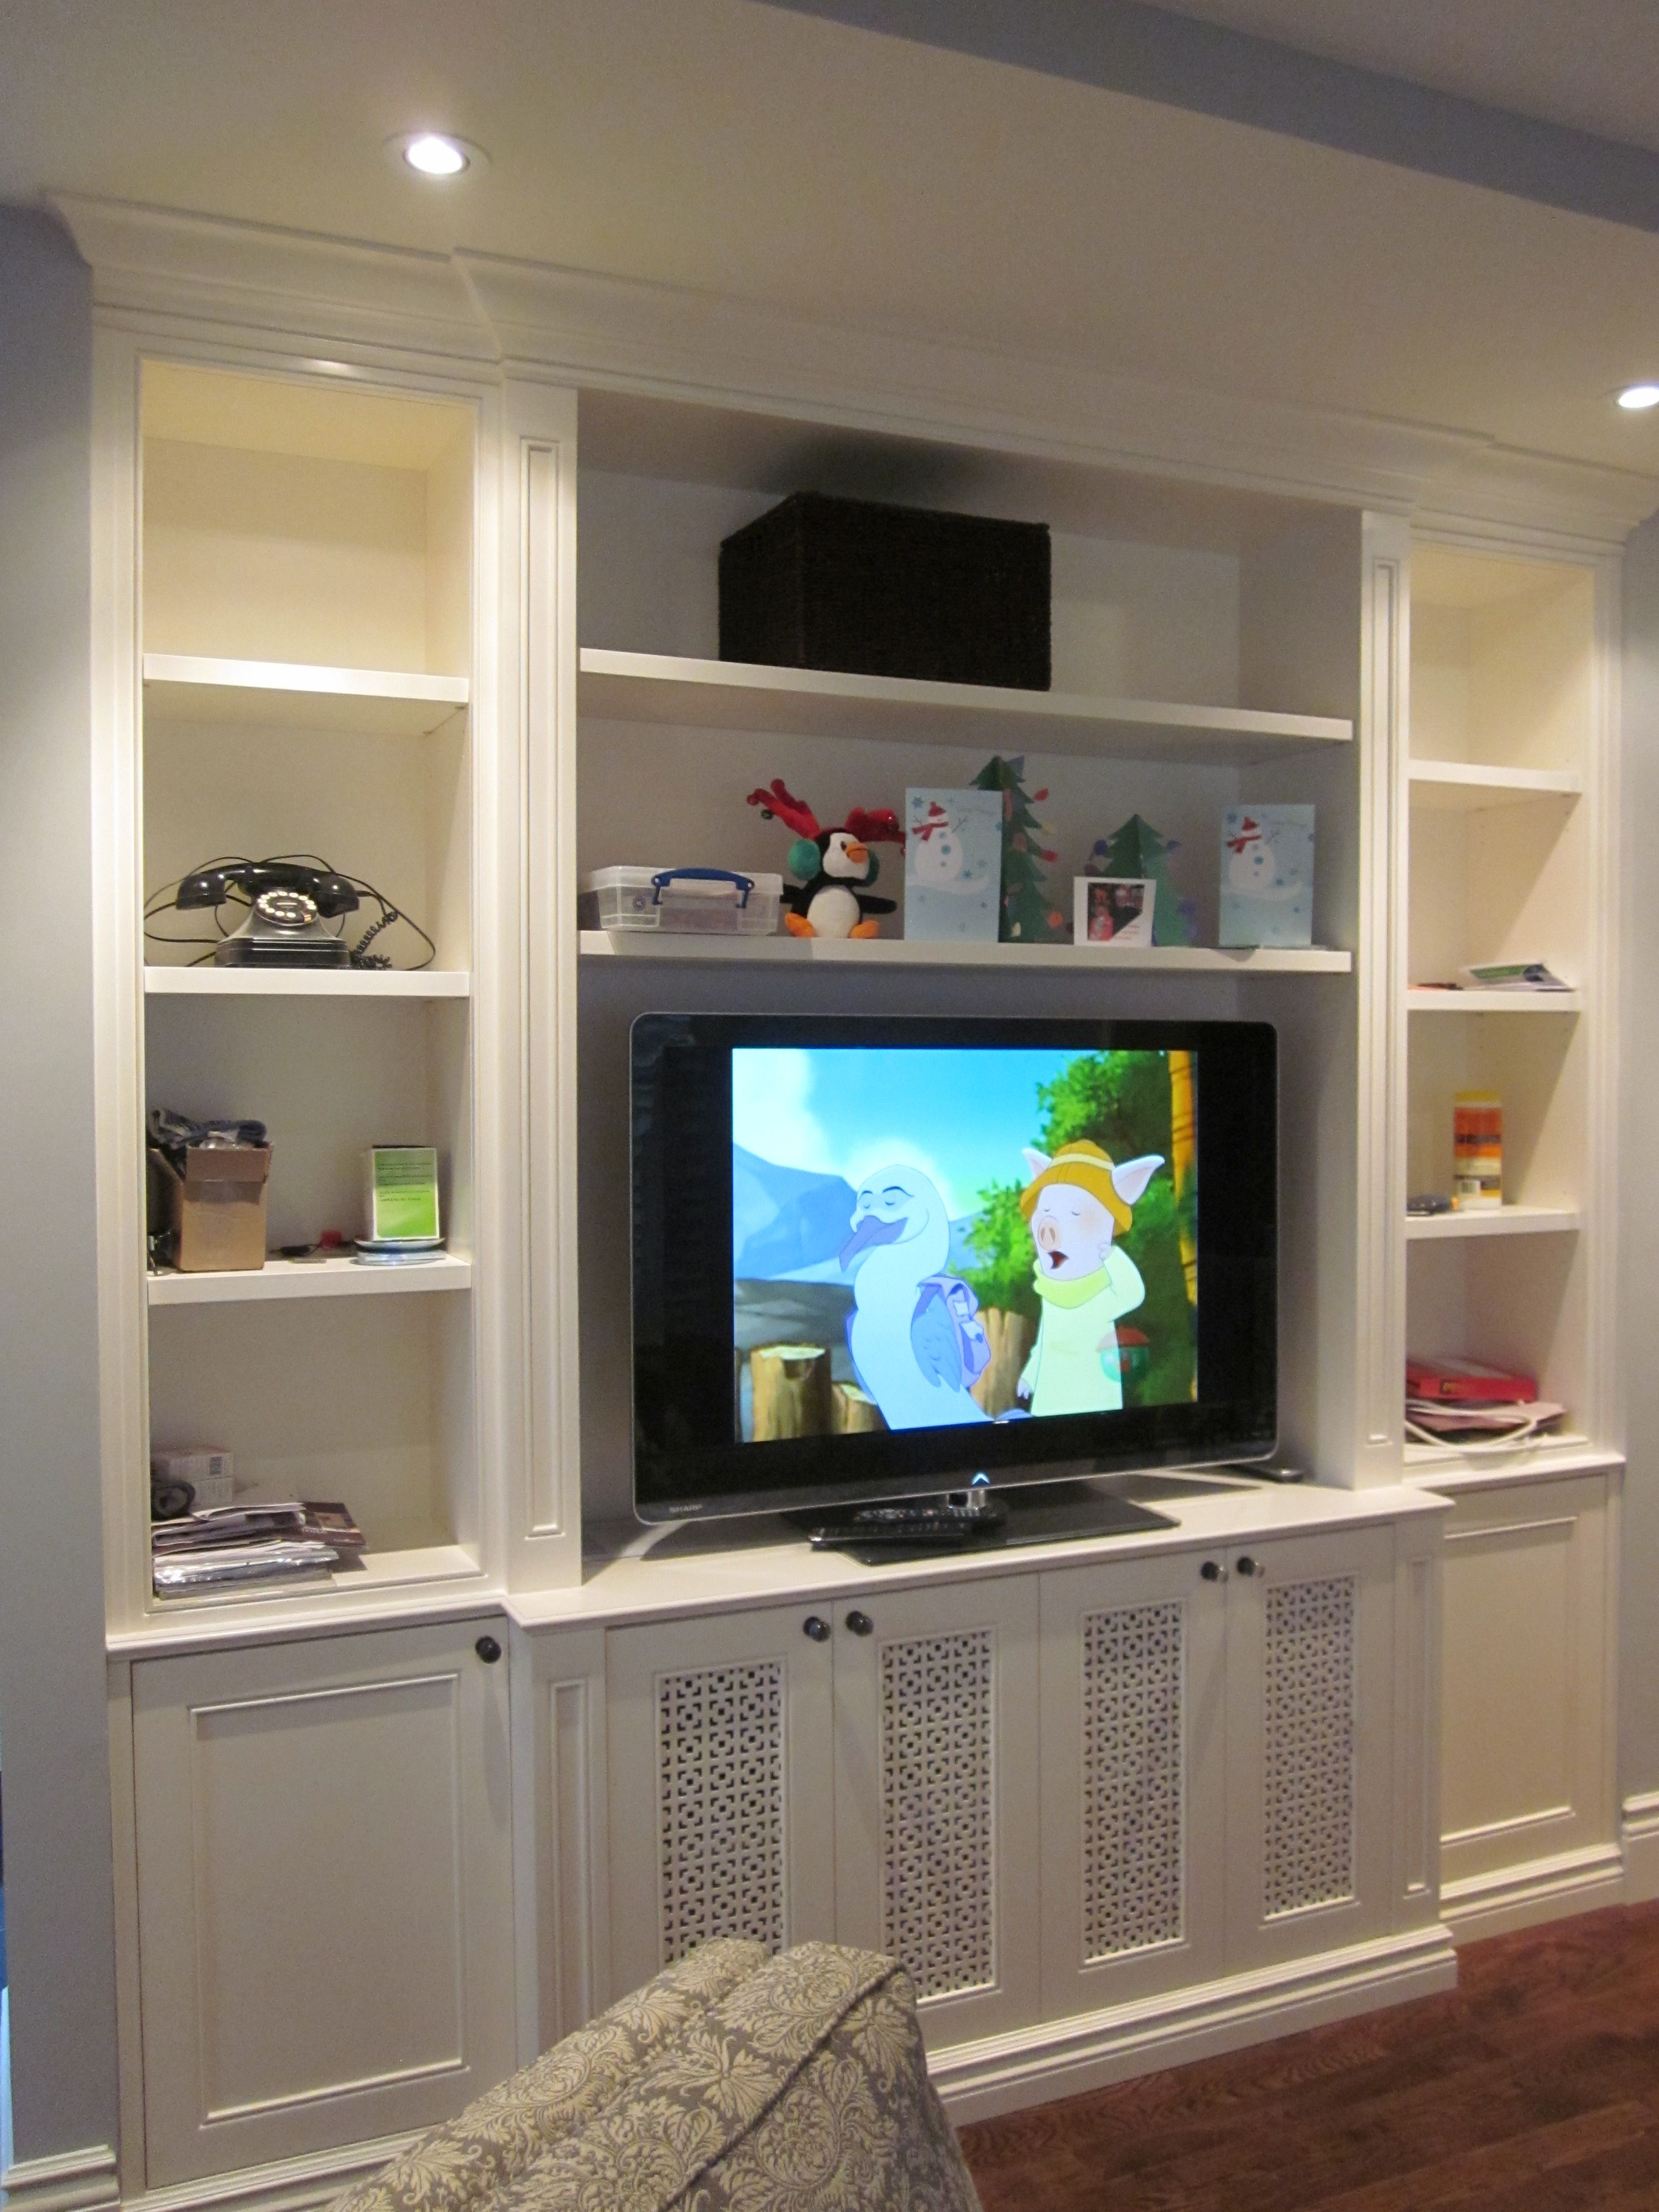 kitchen cabinet inserts ideas ikea rack i'd like this with the middle piece clean no shelving ...